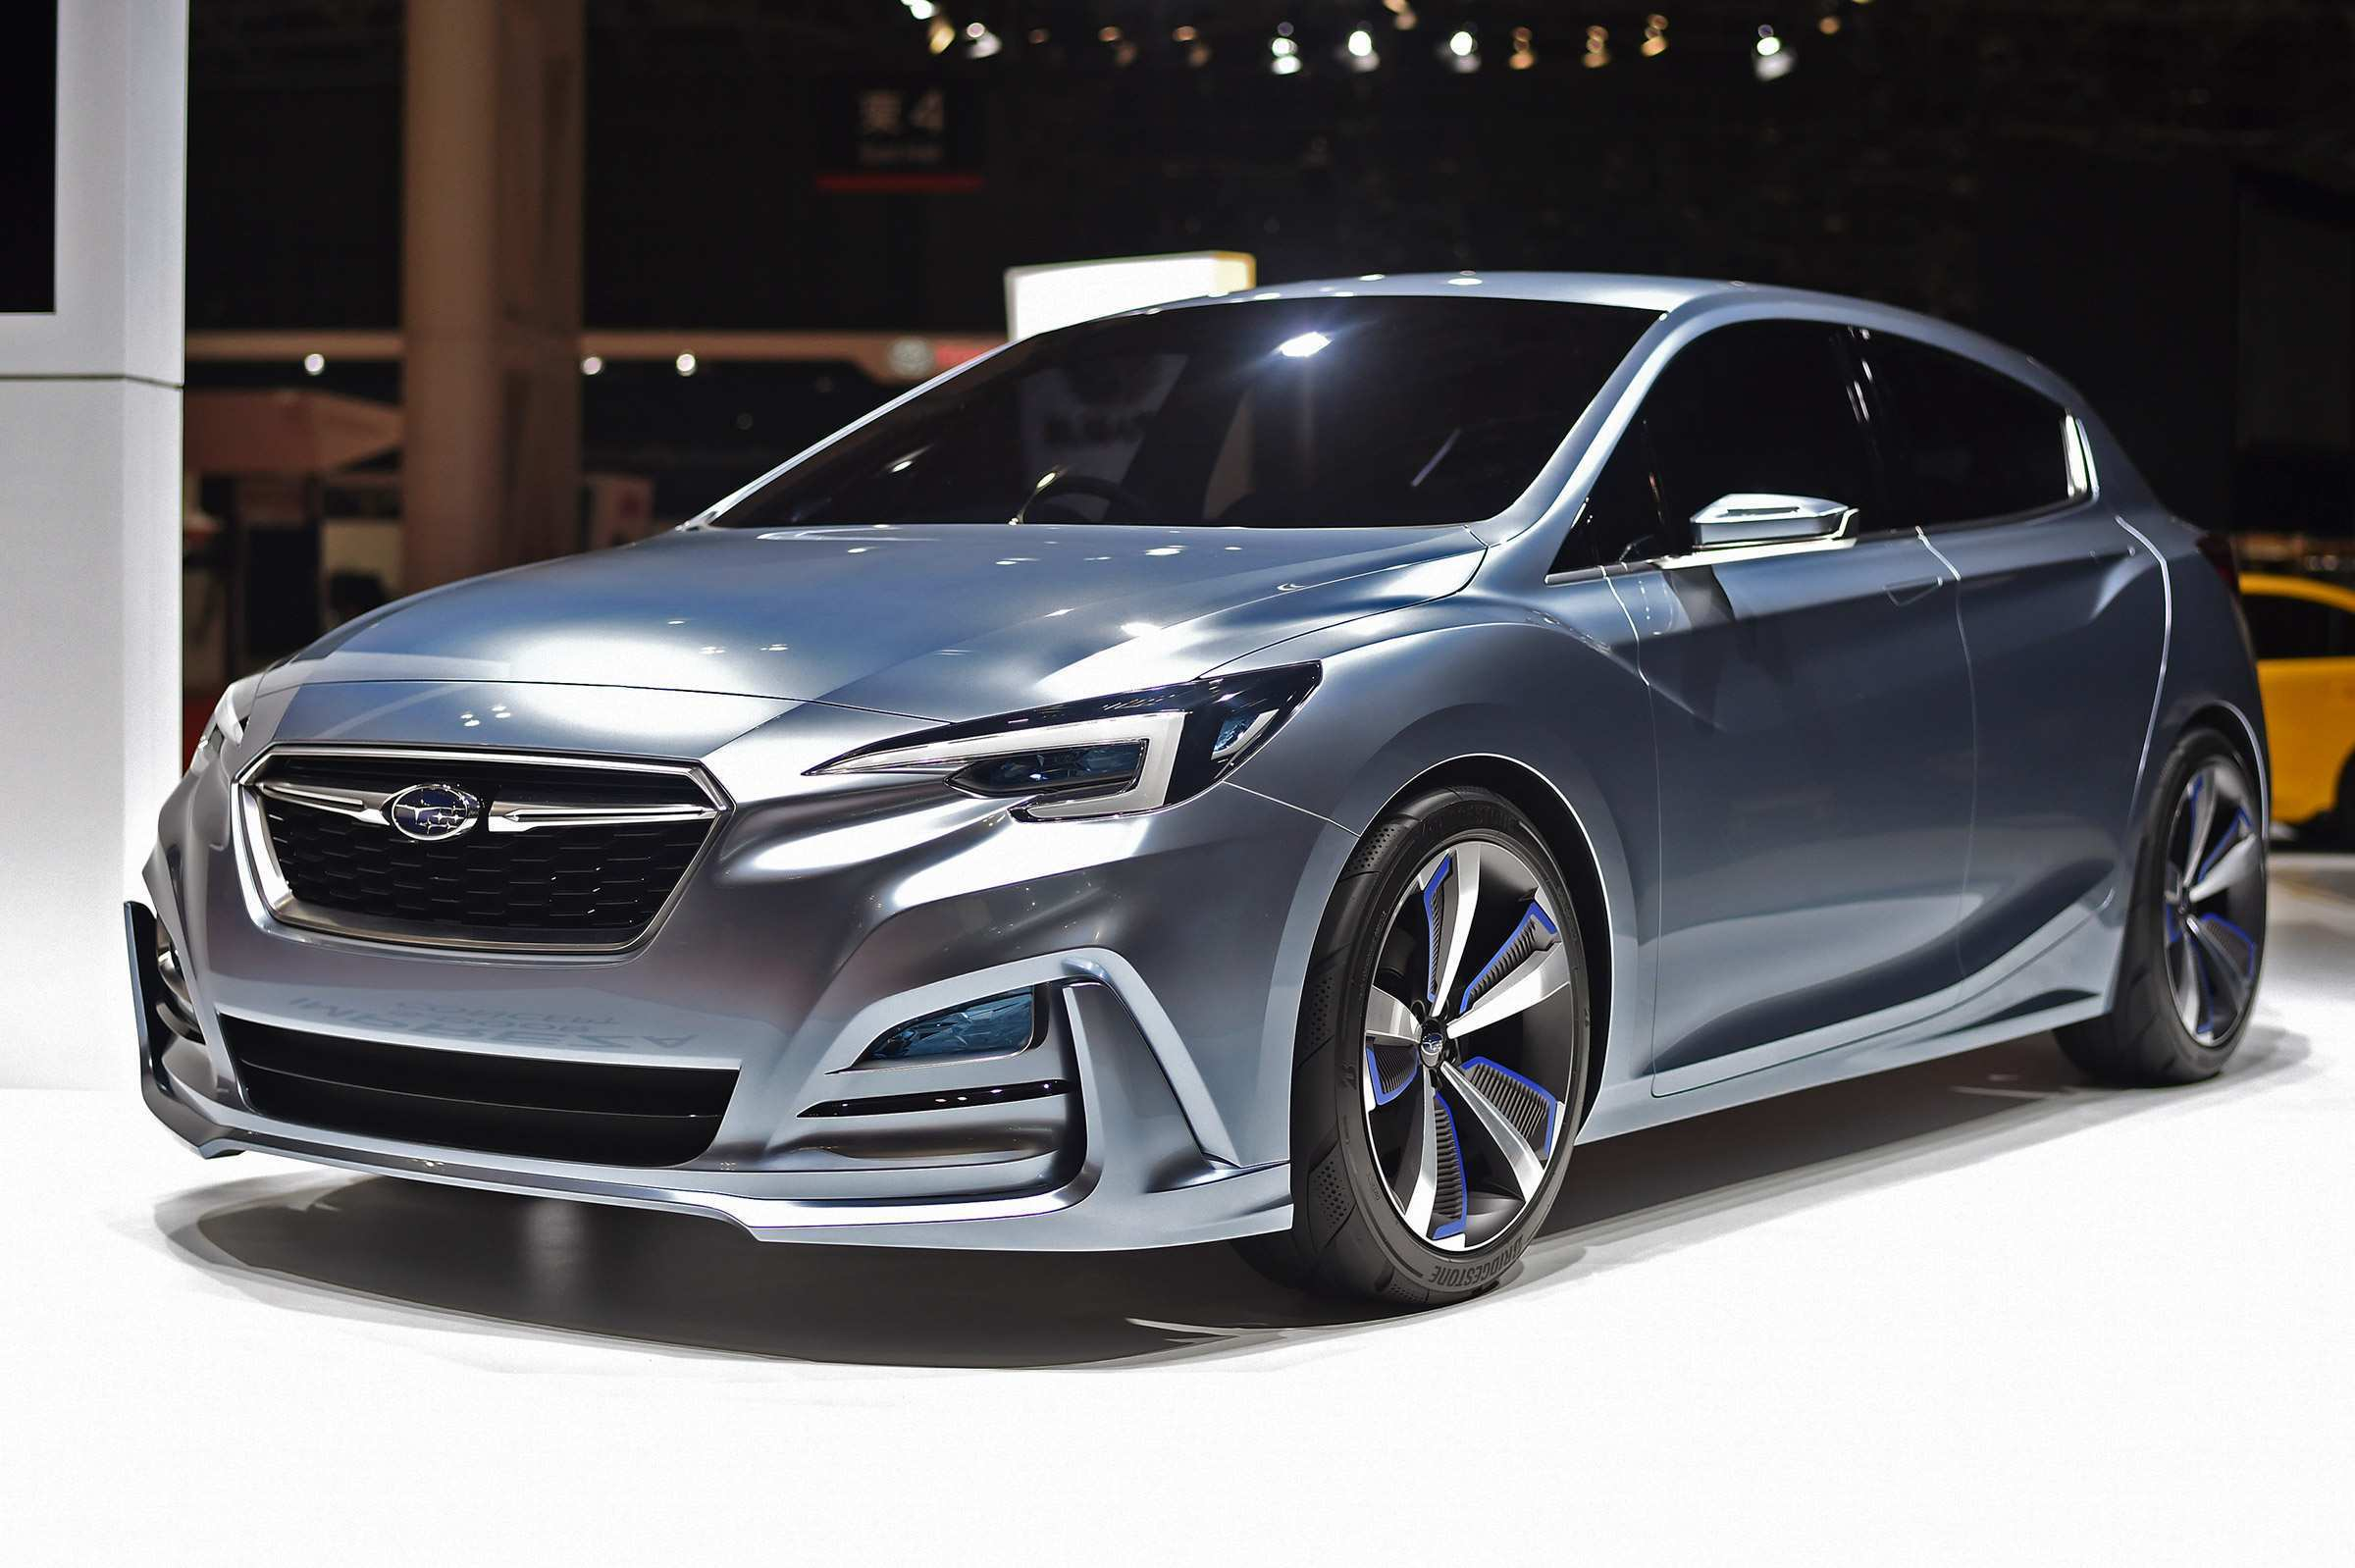 82 A 2020 Opel Astra Review And Release Date